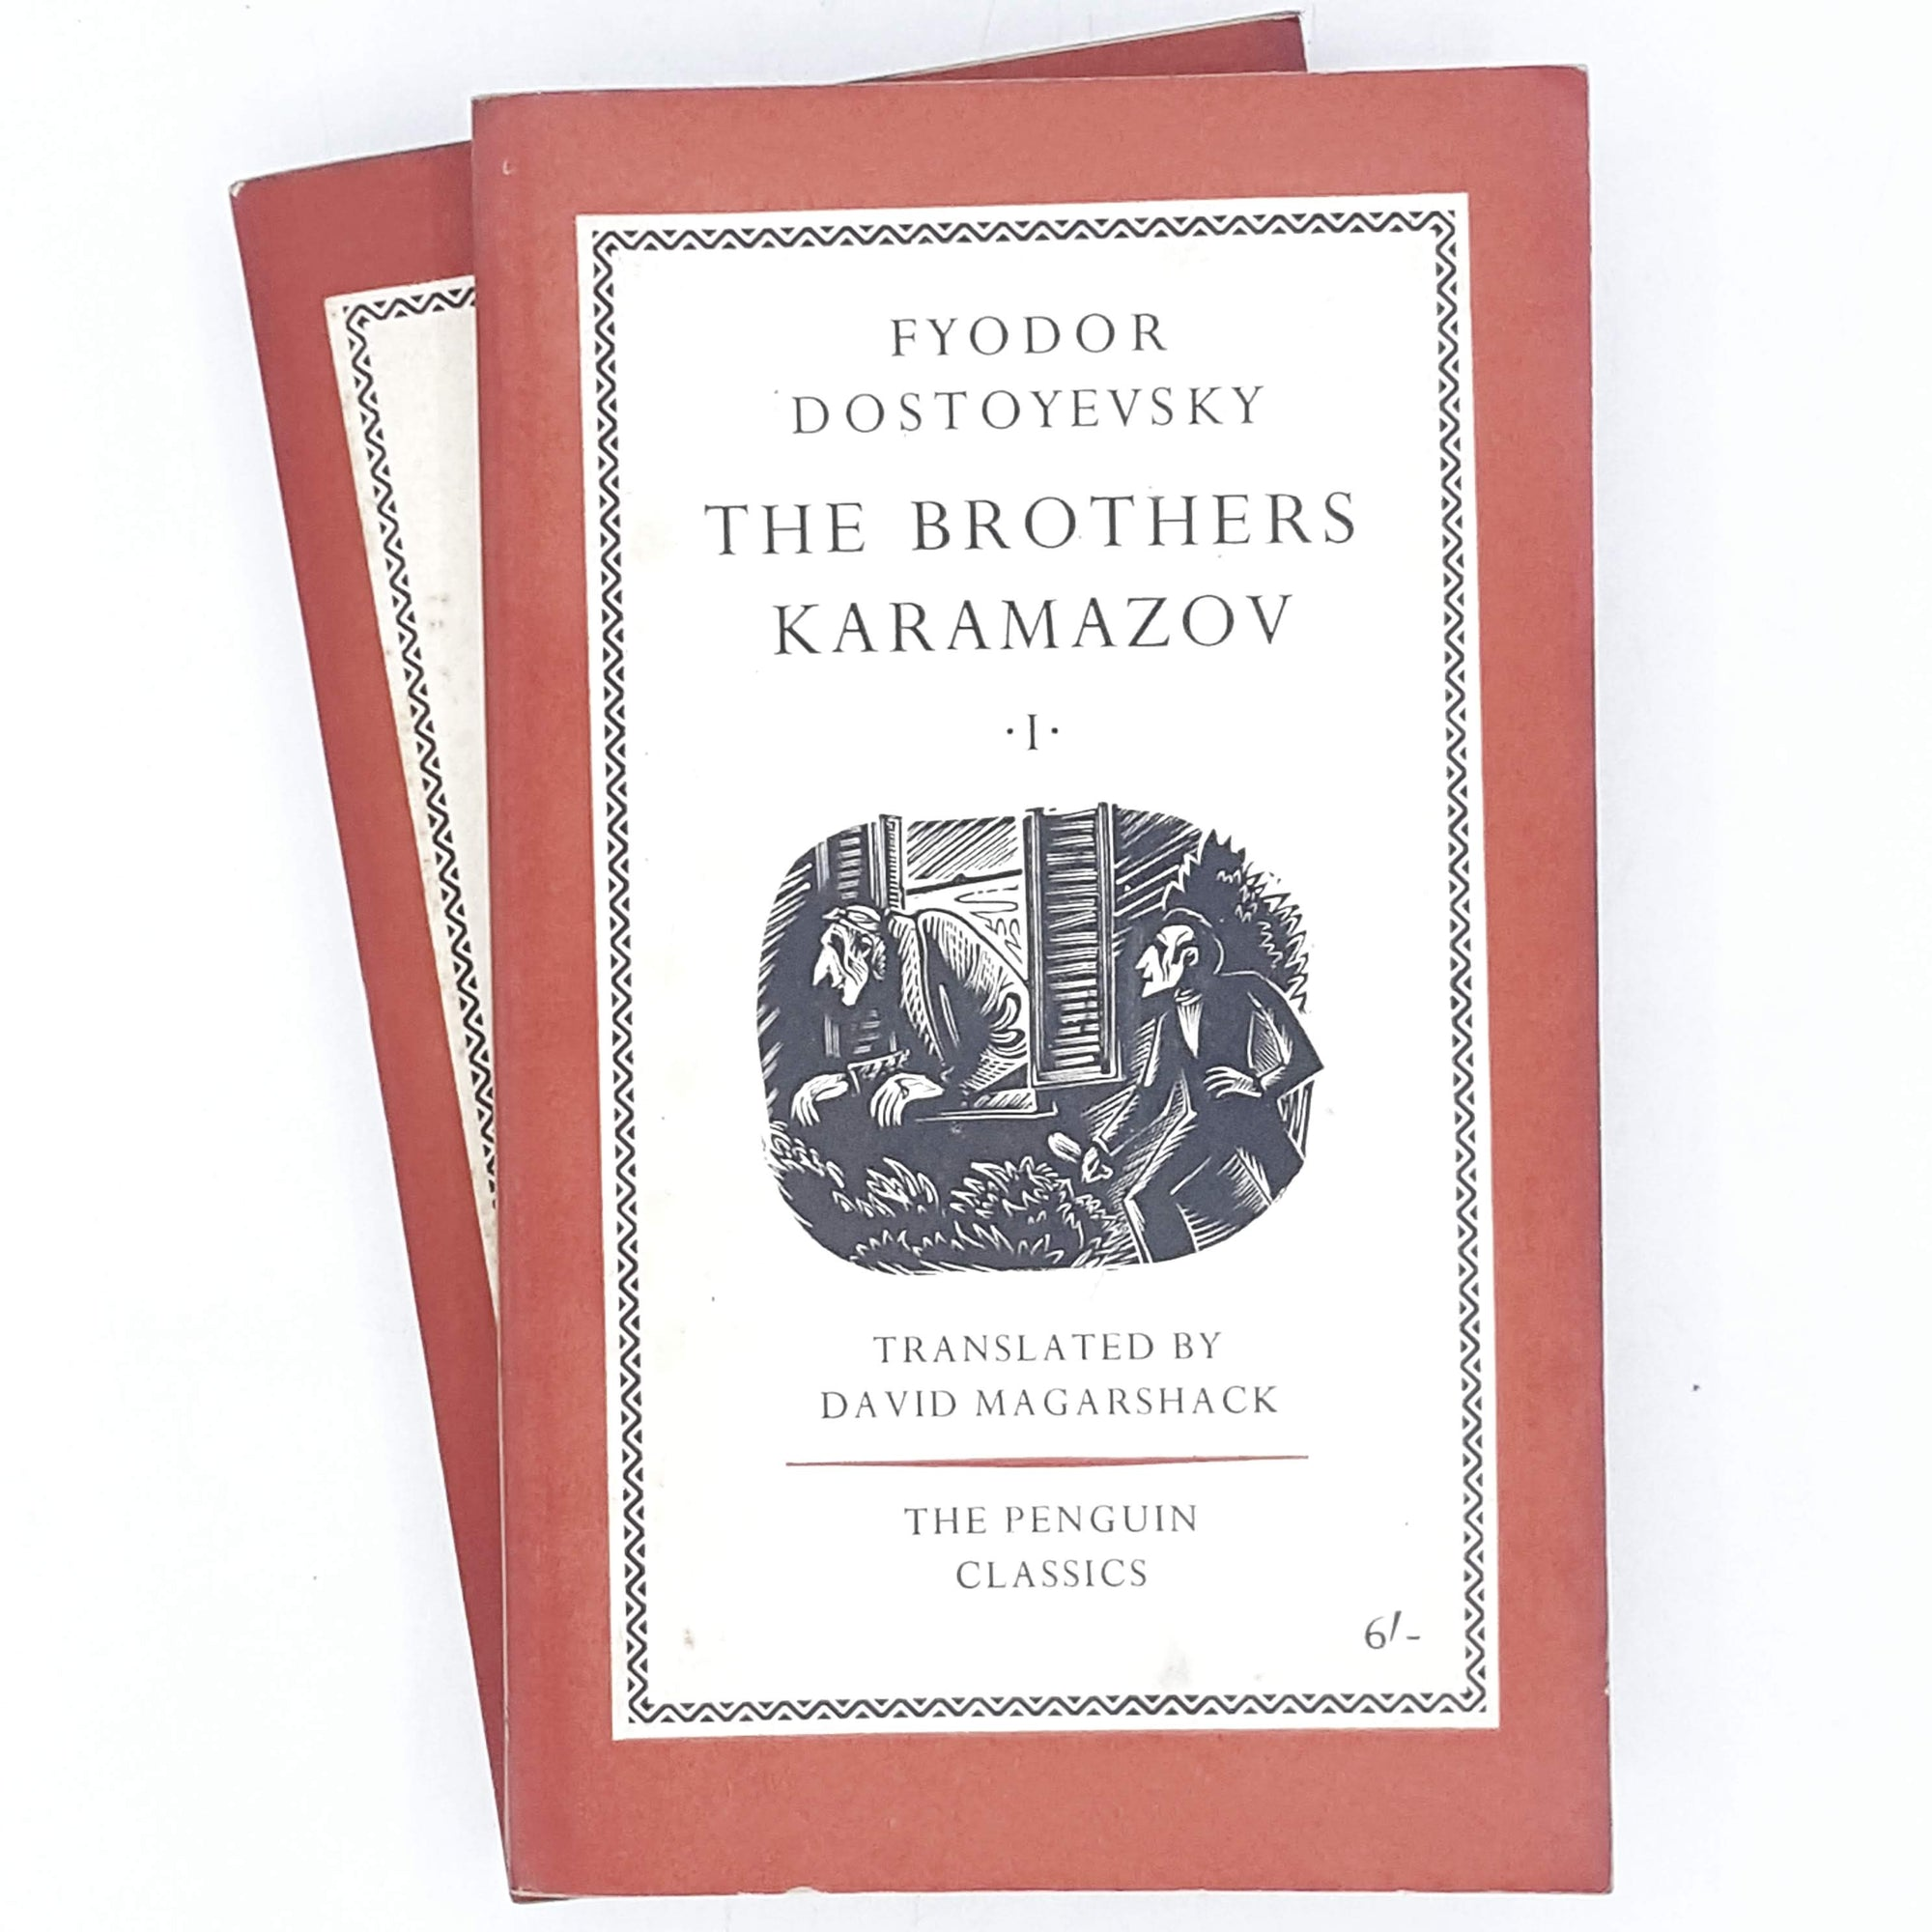 Collection Dostoevsky's The Brothers Karamazov 1960